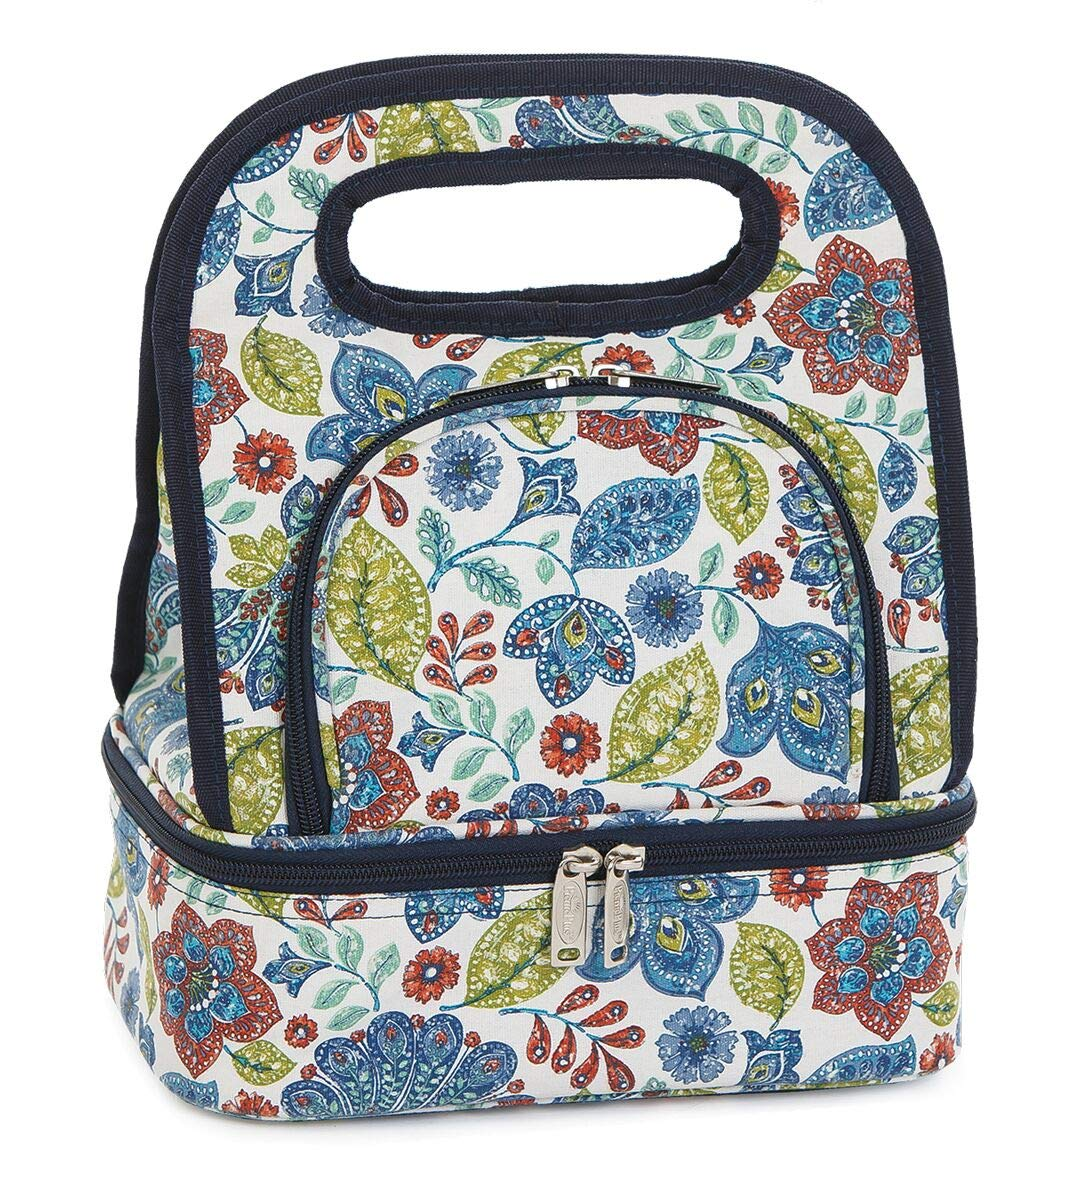 Premium Quality Savoy Lunch Bag Tote - Fully Insulated Includes Bonus Storage Food Container by Picnic Plus, 10''w x 7''d x 12''h (Blue Peacock) by Picnic Plus